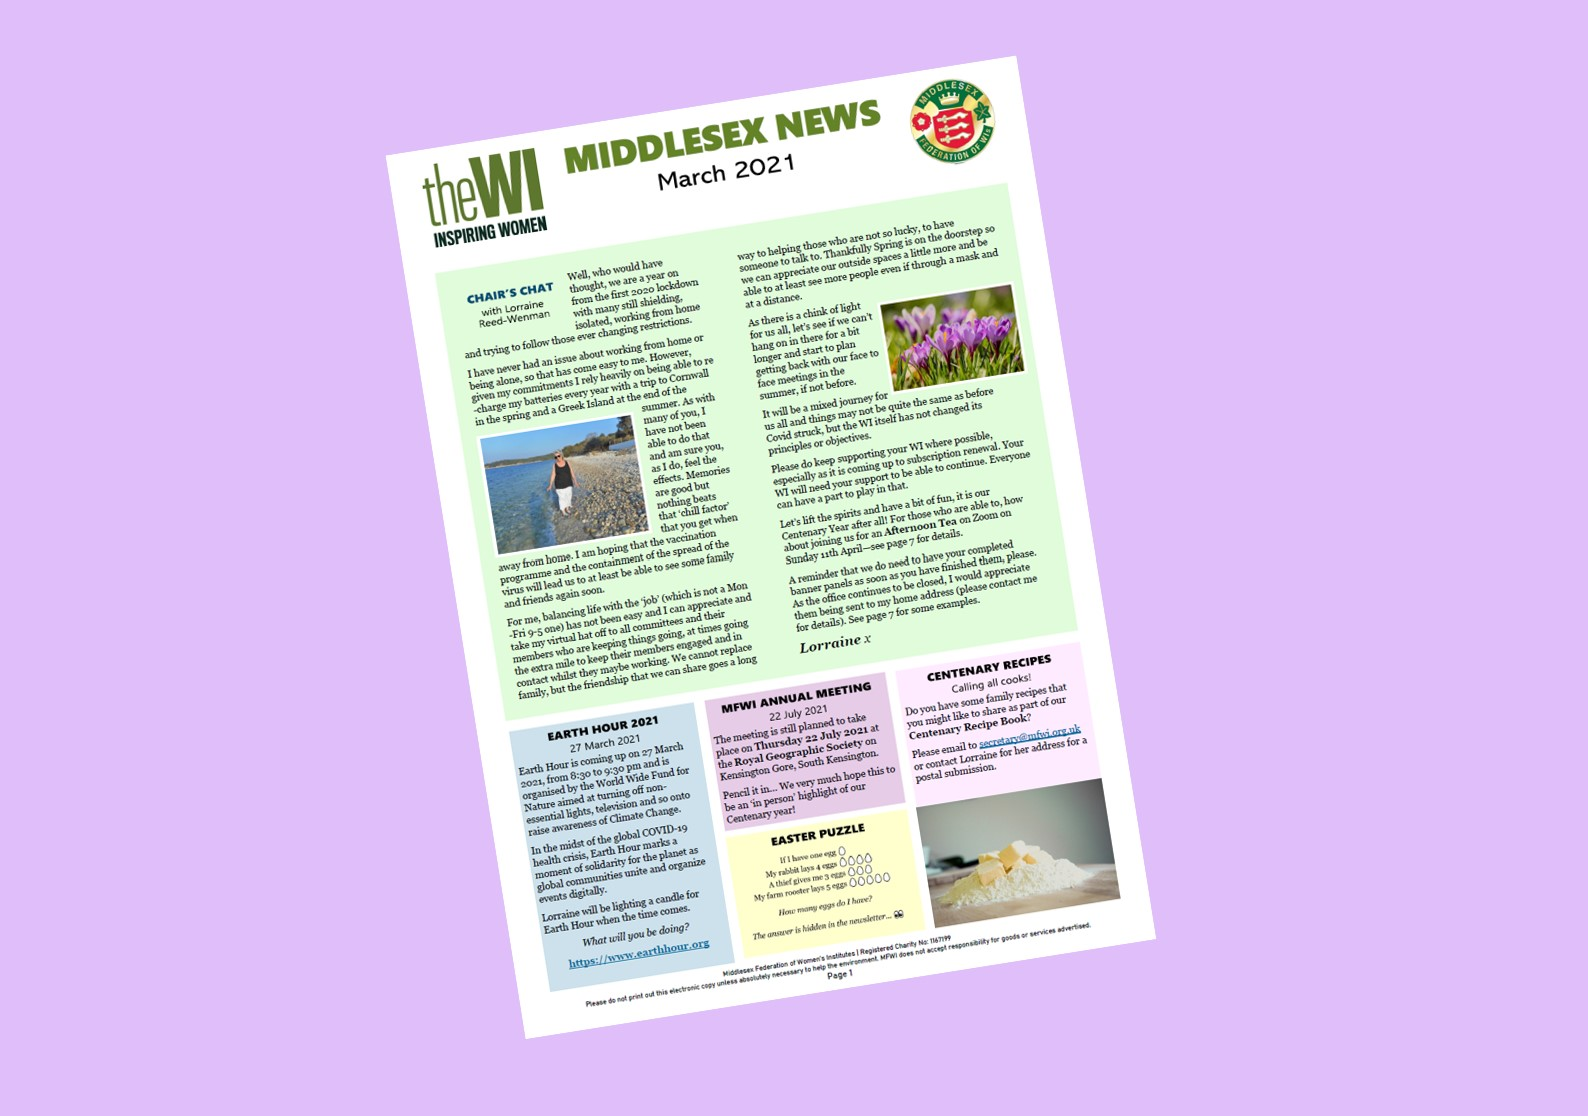 Middlesex News March 2021 - cover on a purple background